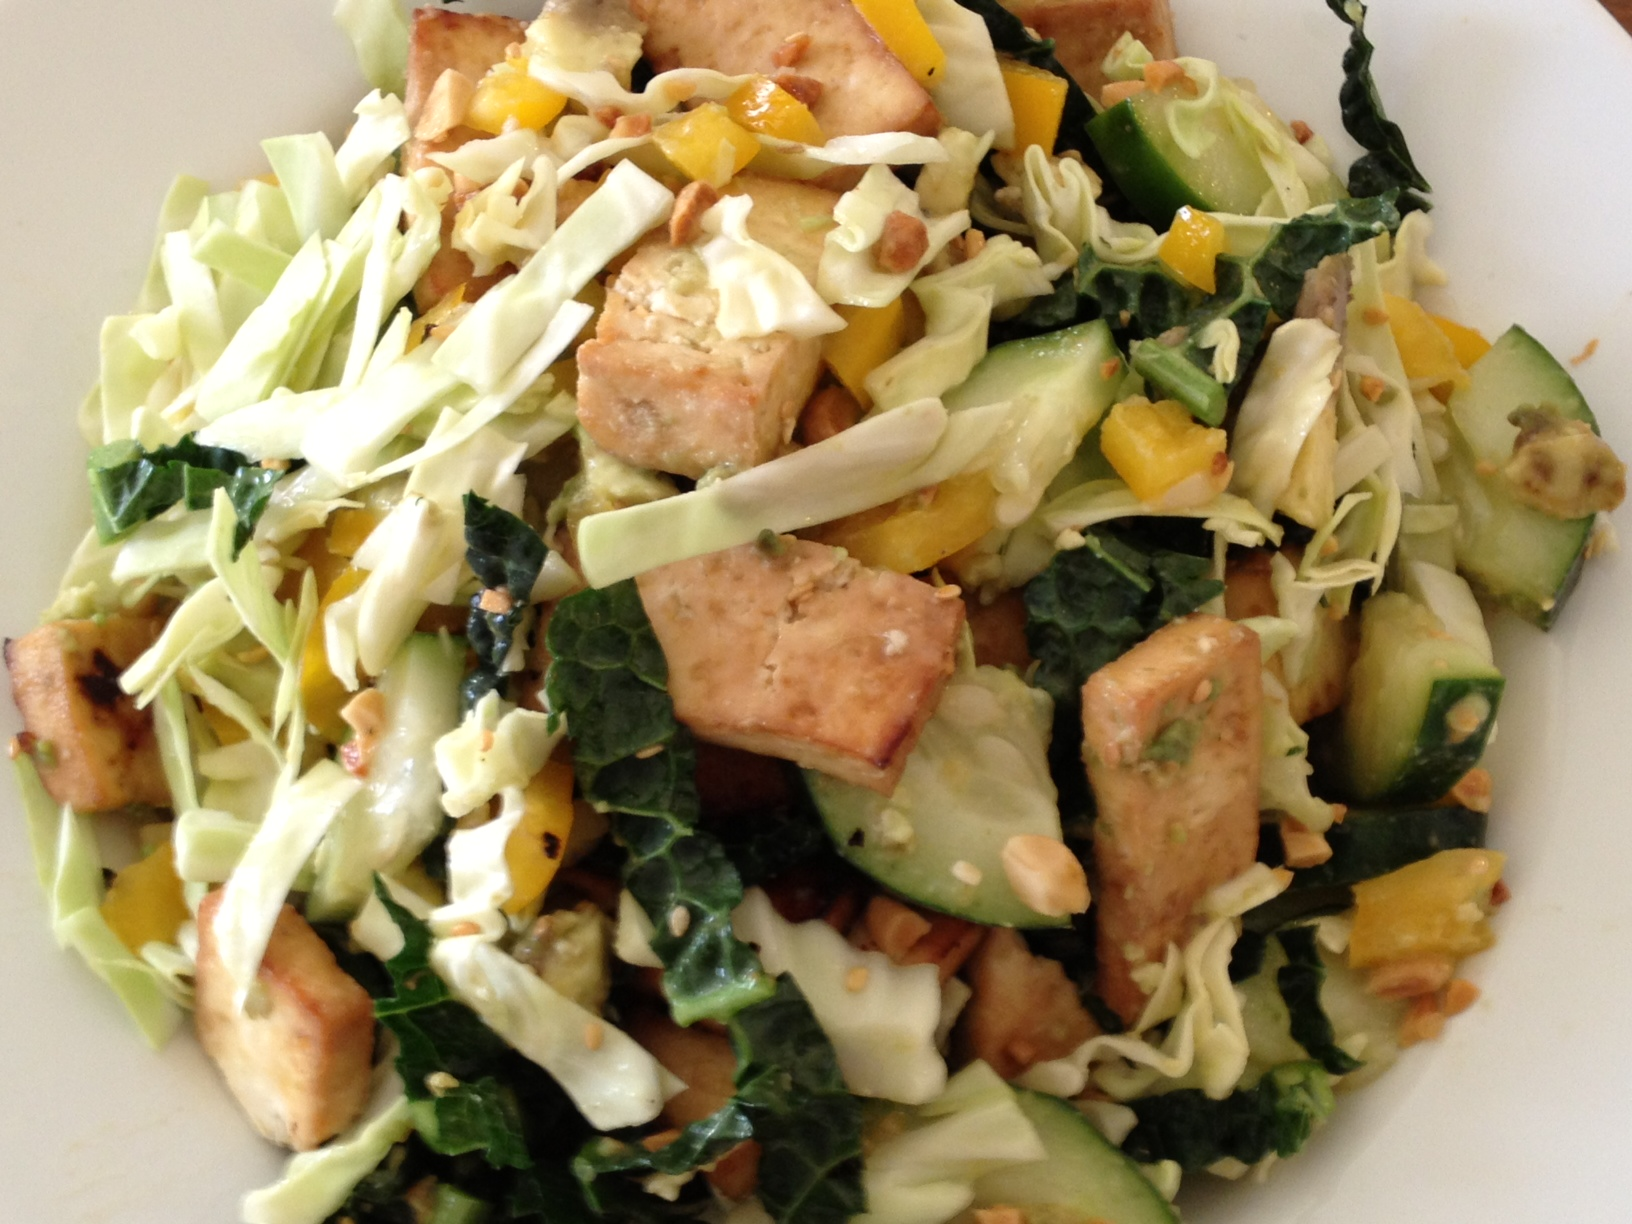 Once the tofu is ready, add to the salad and toss with the dressing ...